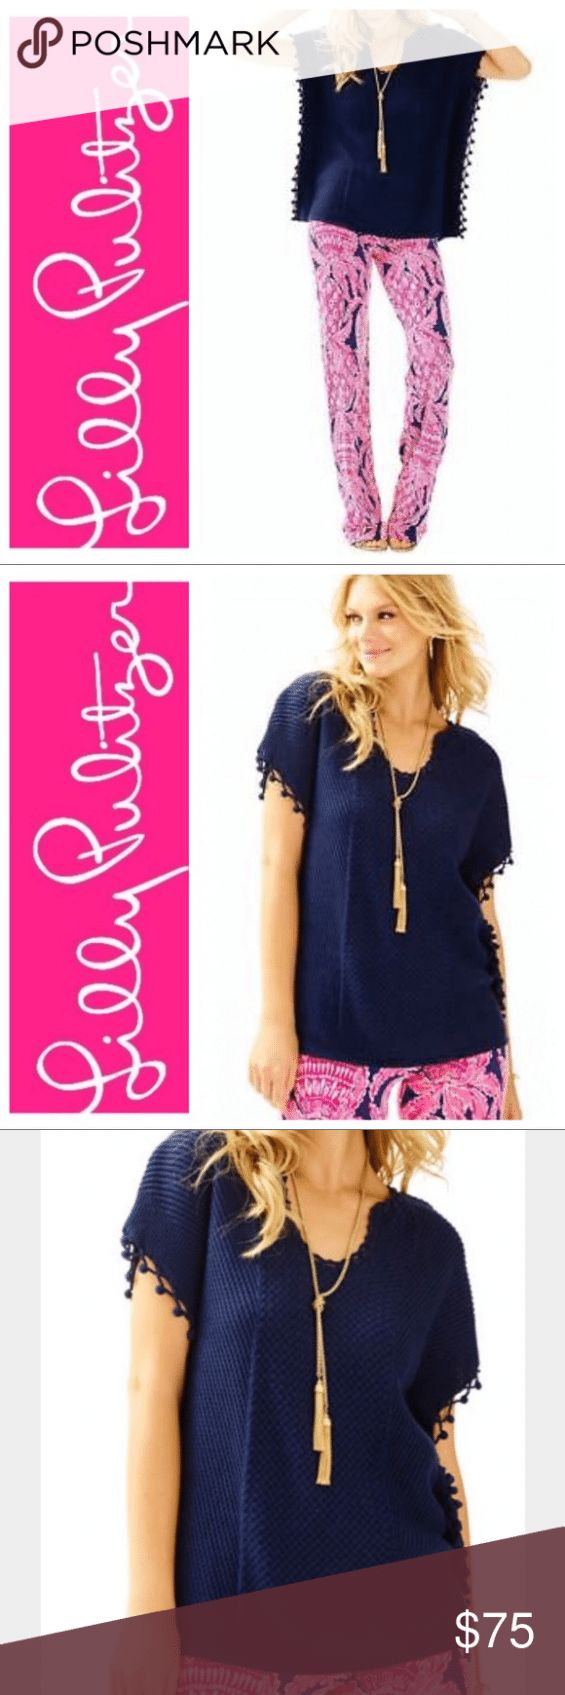 Lilly Pulitzer Navy Blue KEATING PONCHO SWEATER Lilly Pulitzer Navy Blue KEATING...